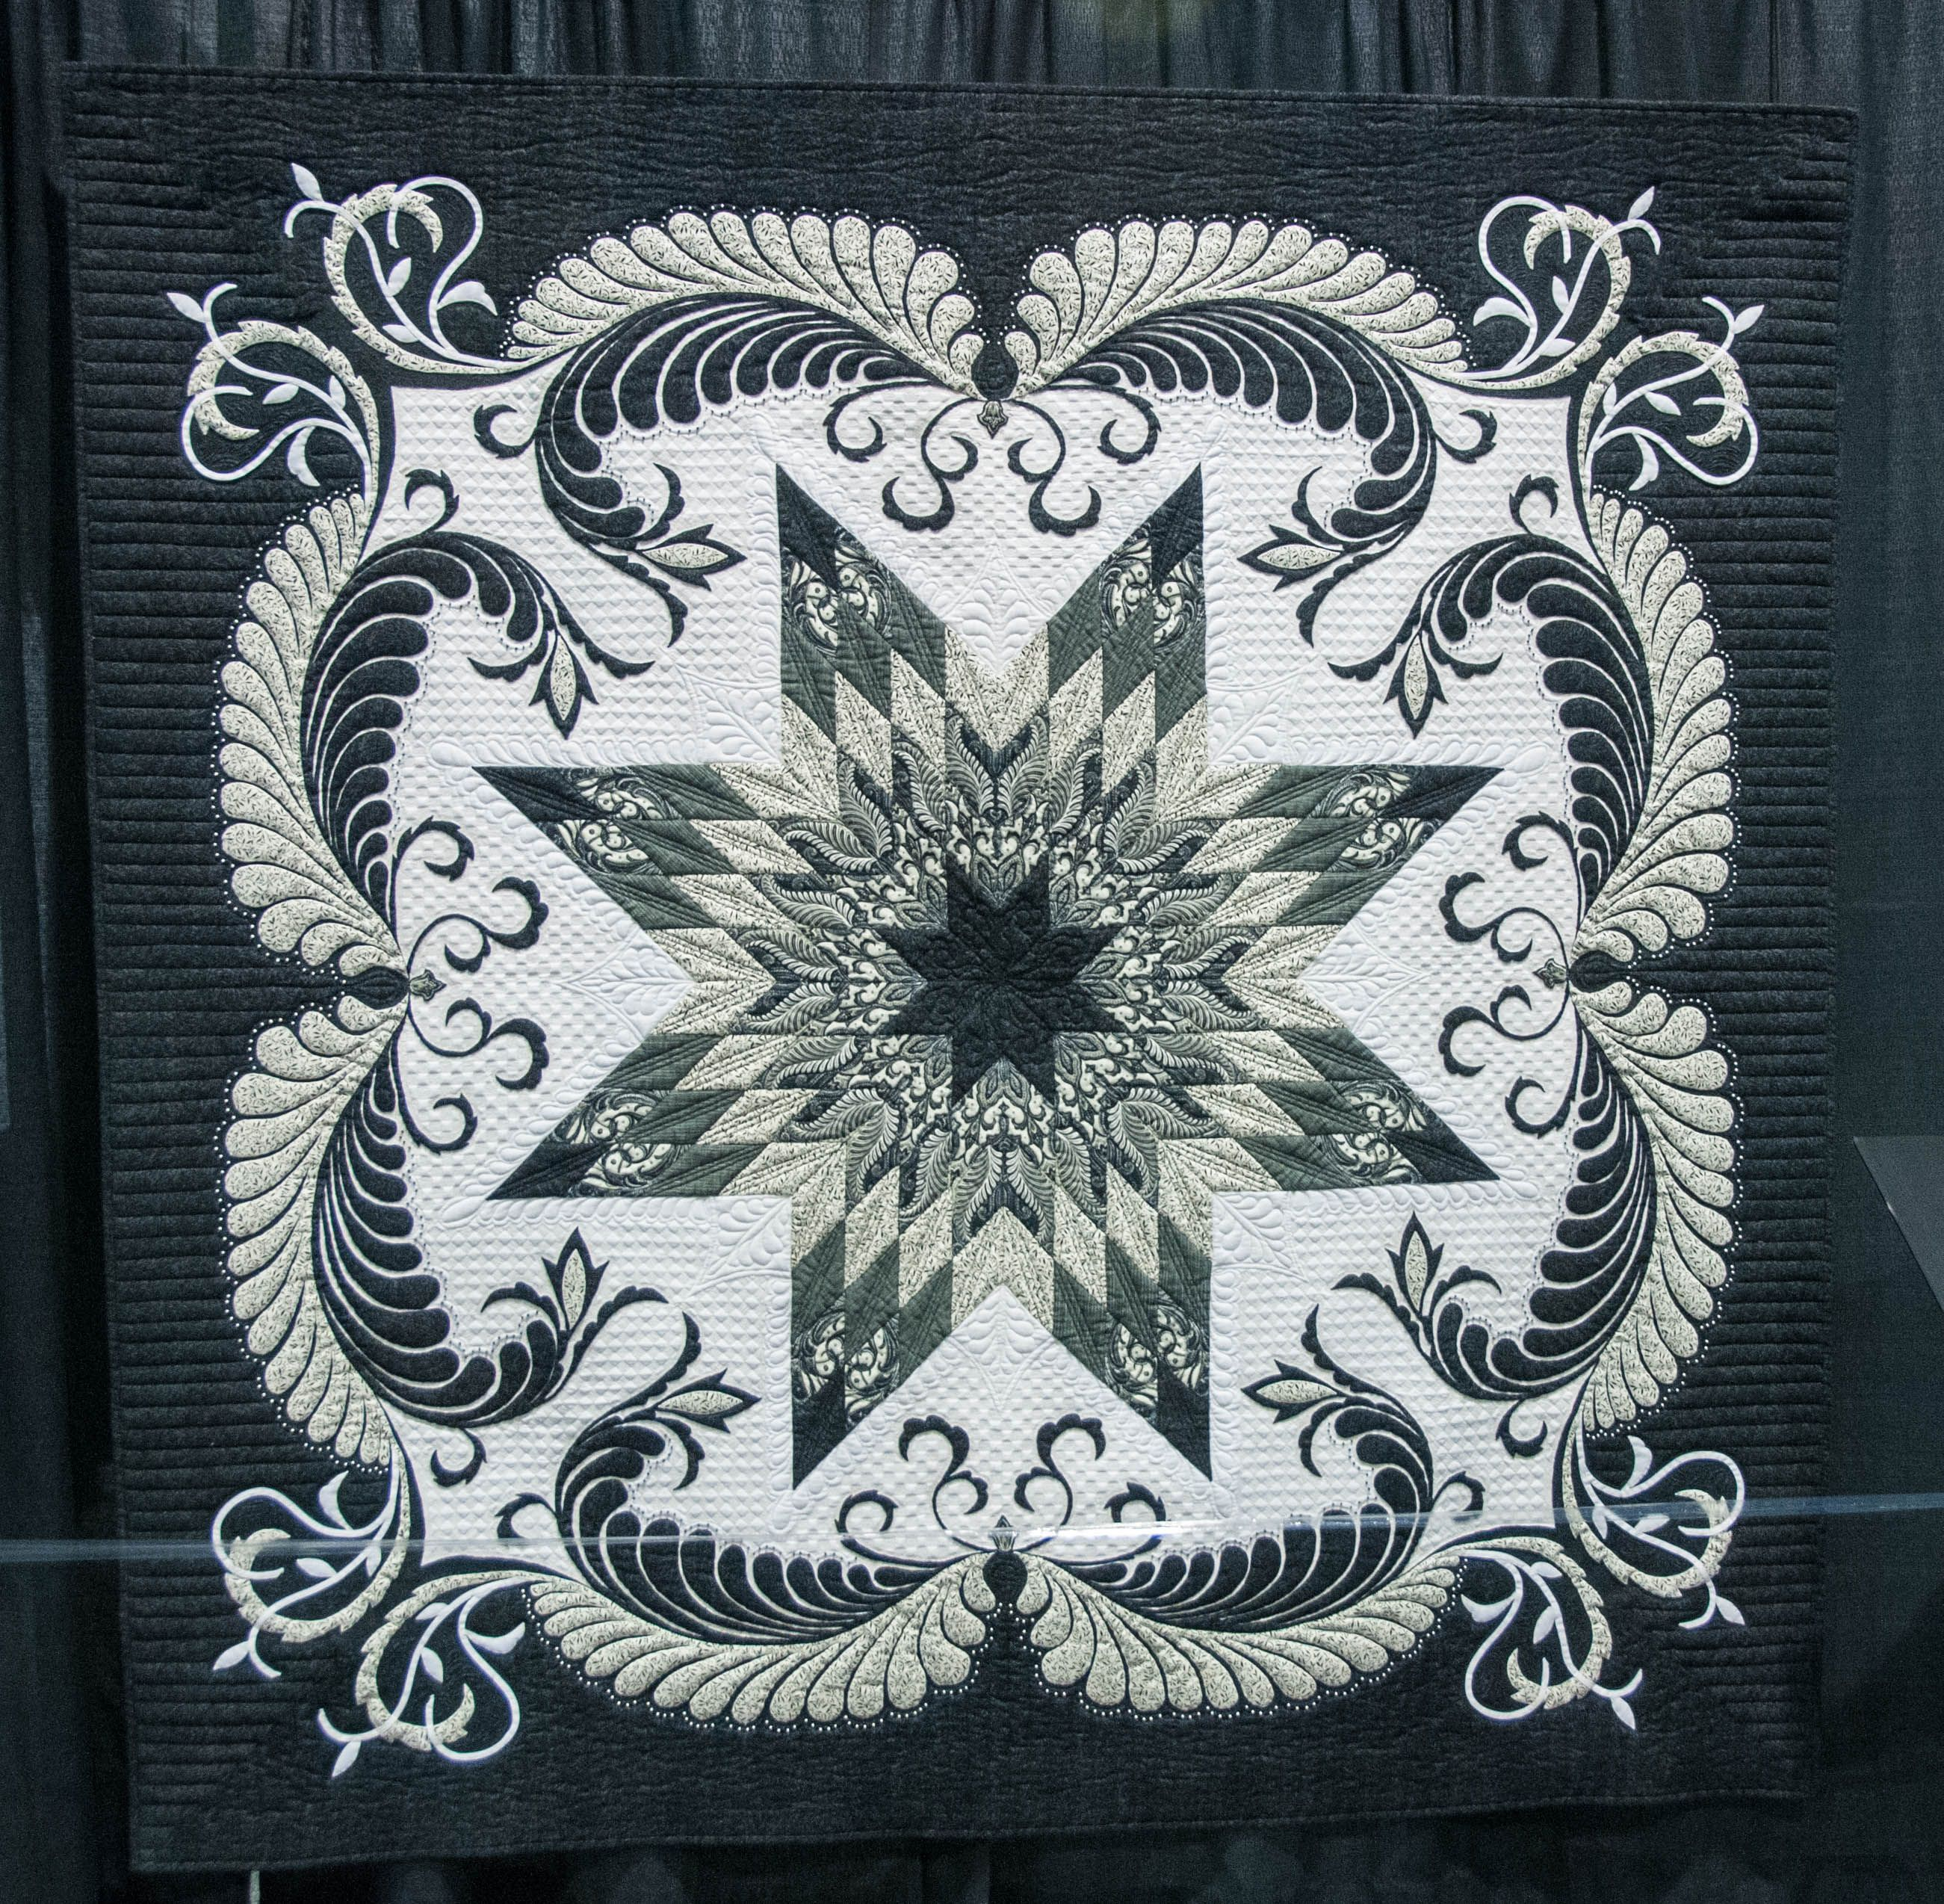 Ravendale Star by Linda Fleschner. In the Quilts A World